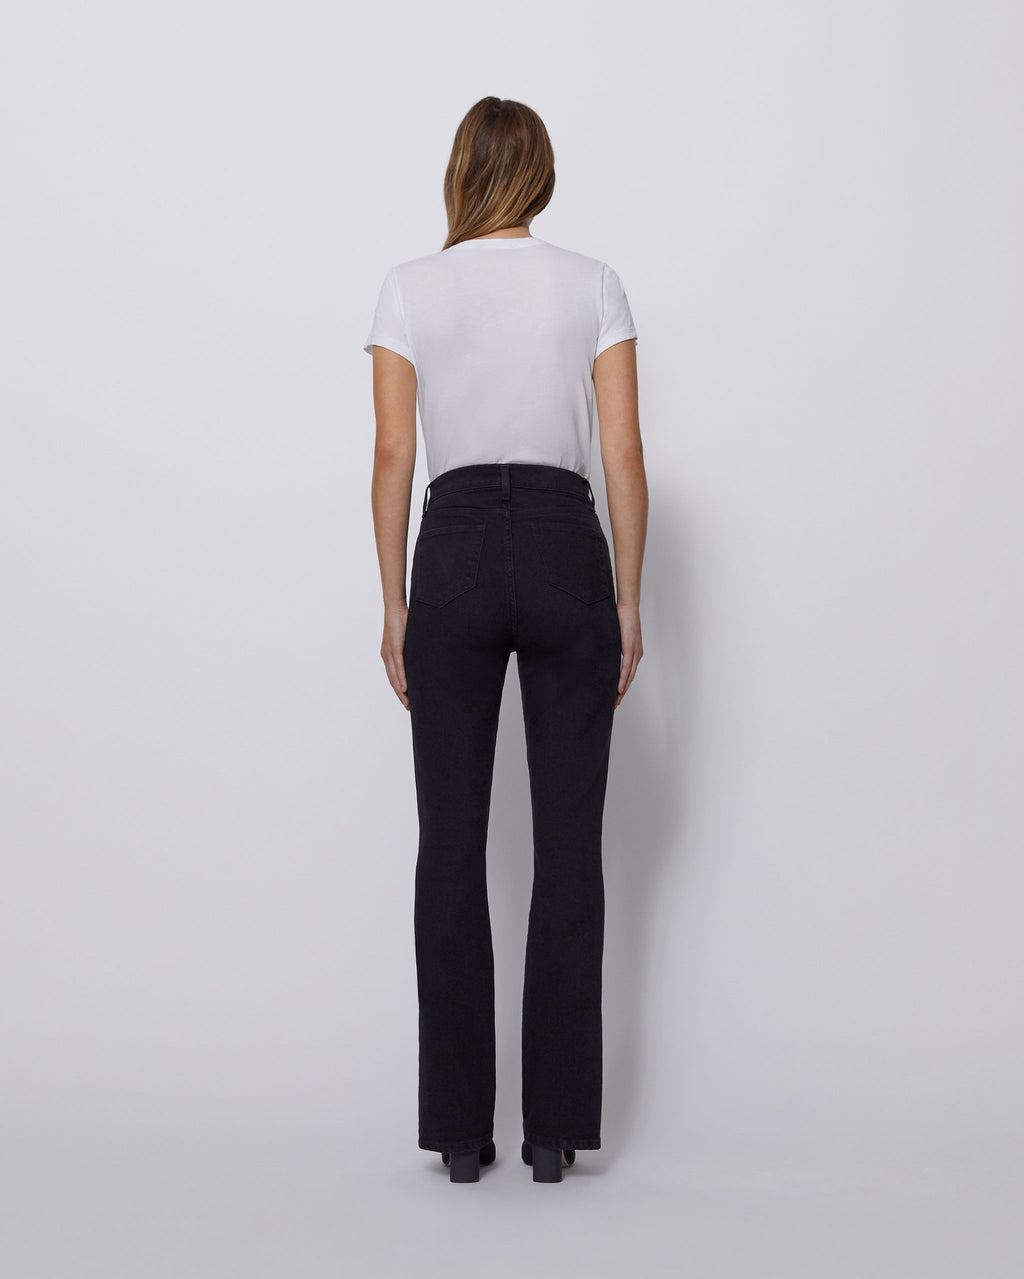 The Vented Skinny Jean in Carbon Black